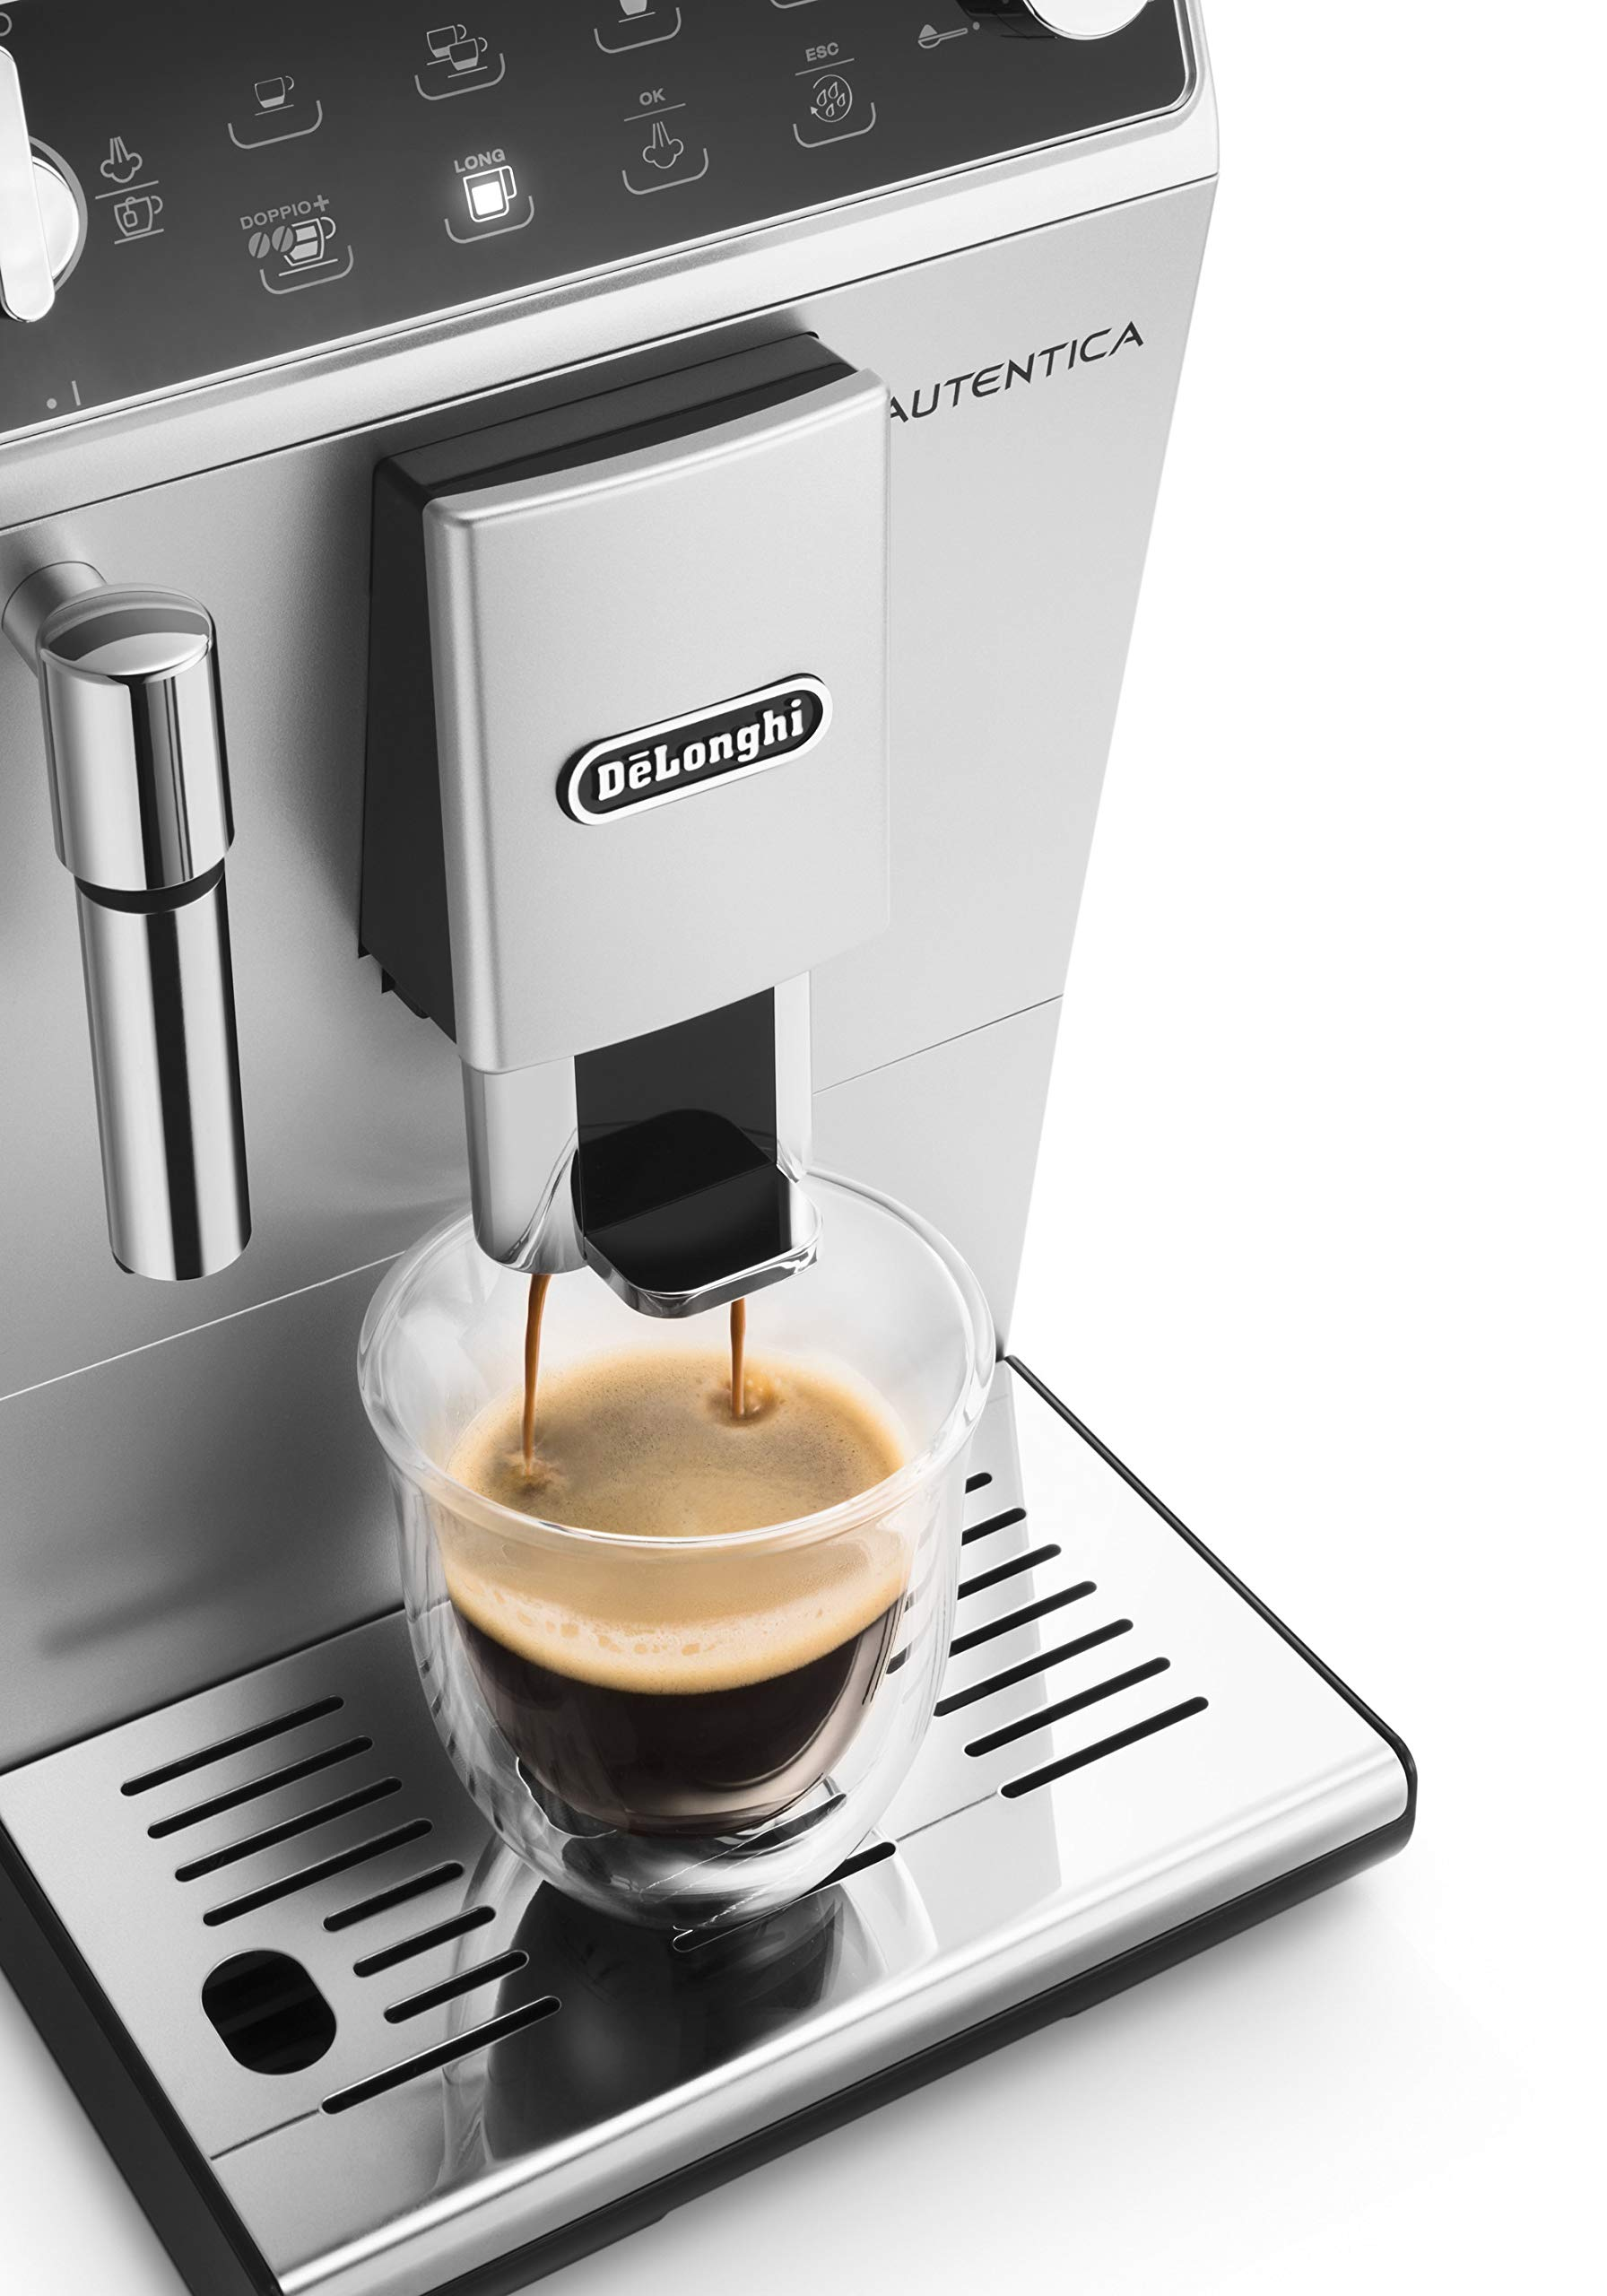 81MJfHu3nHL - De'Longhi Autentica Cappuccino, Fully Automatic Bean to Cup Coffee Machine, Espresso Maker, ETAM29.660.SB, Silver and…